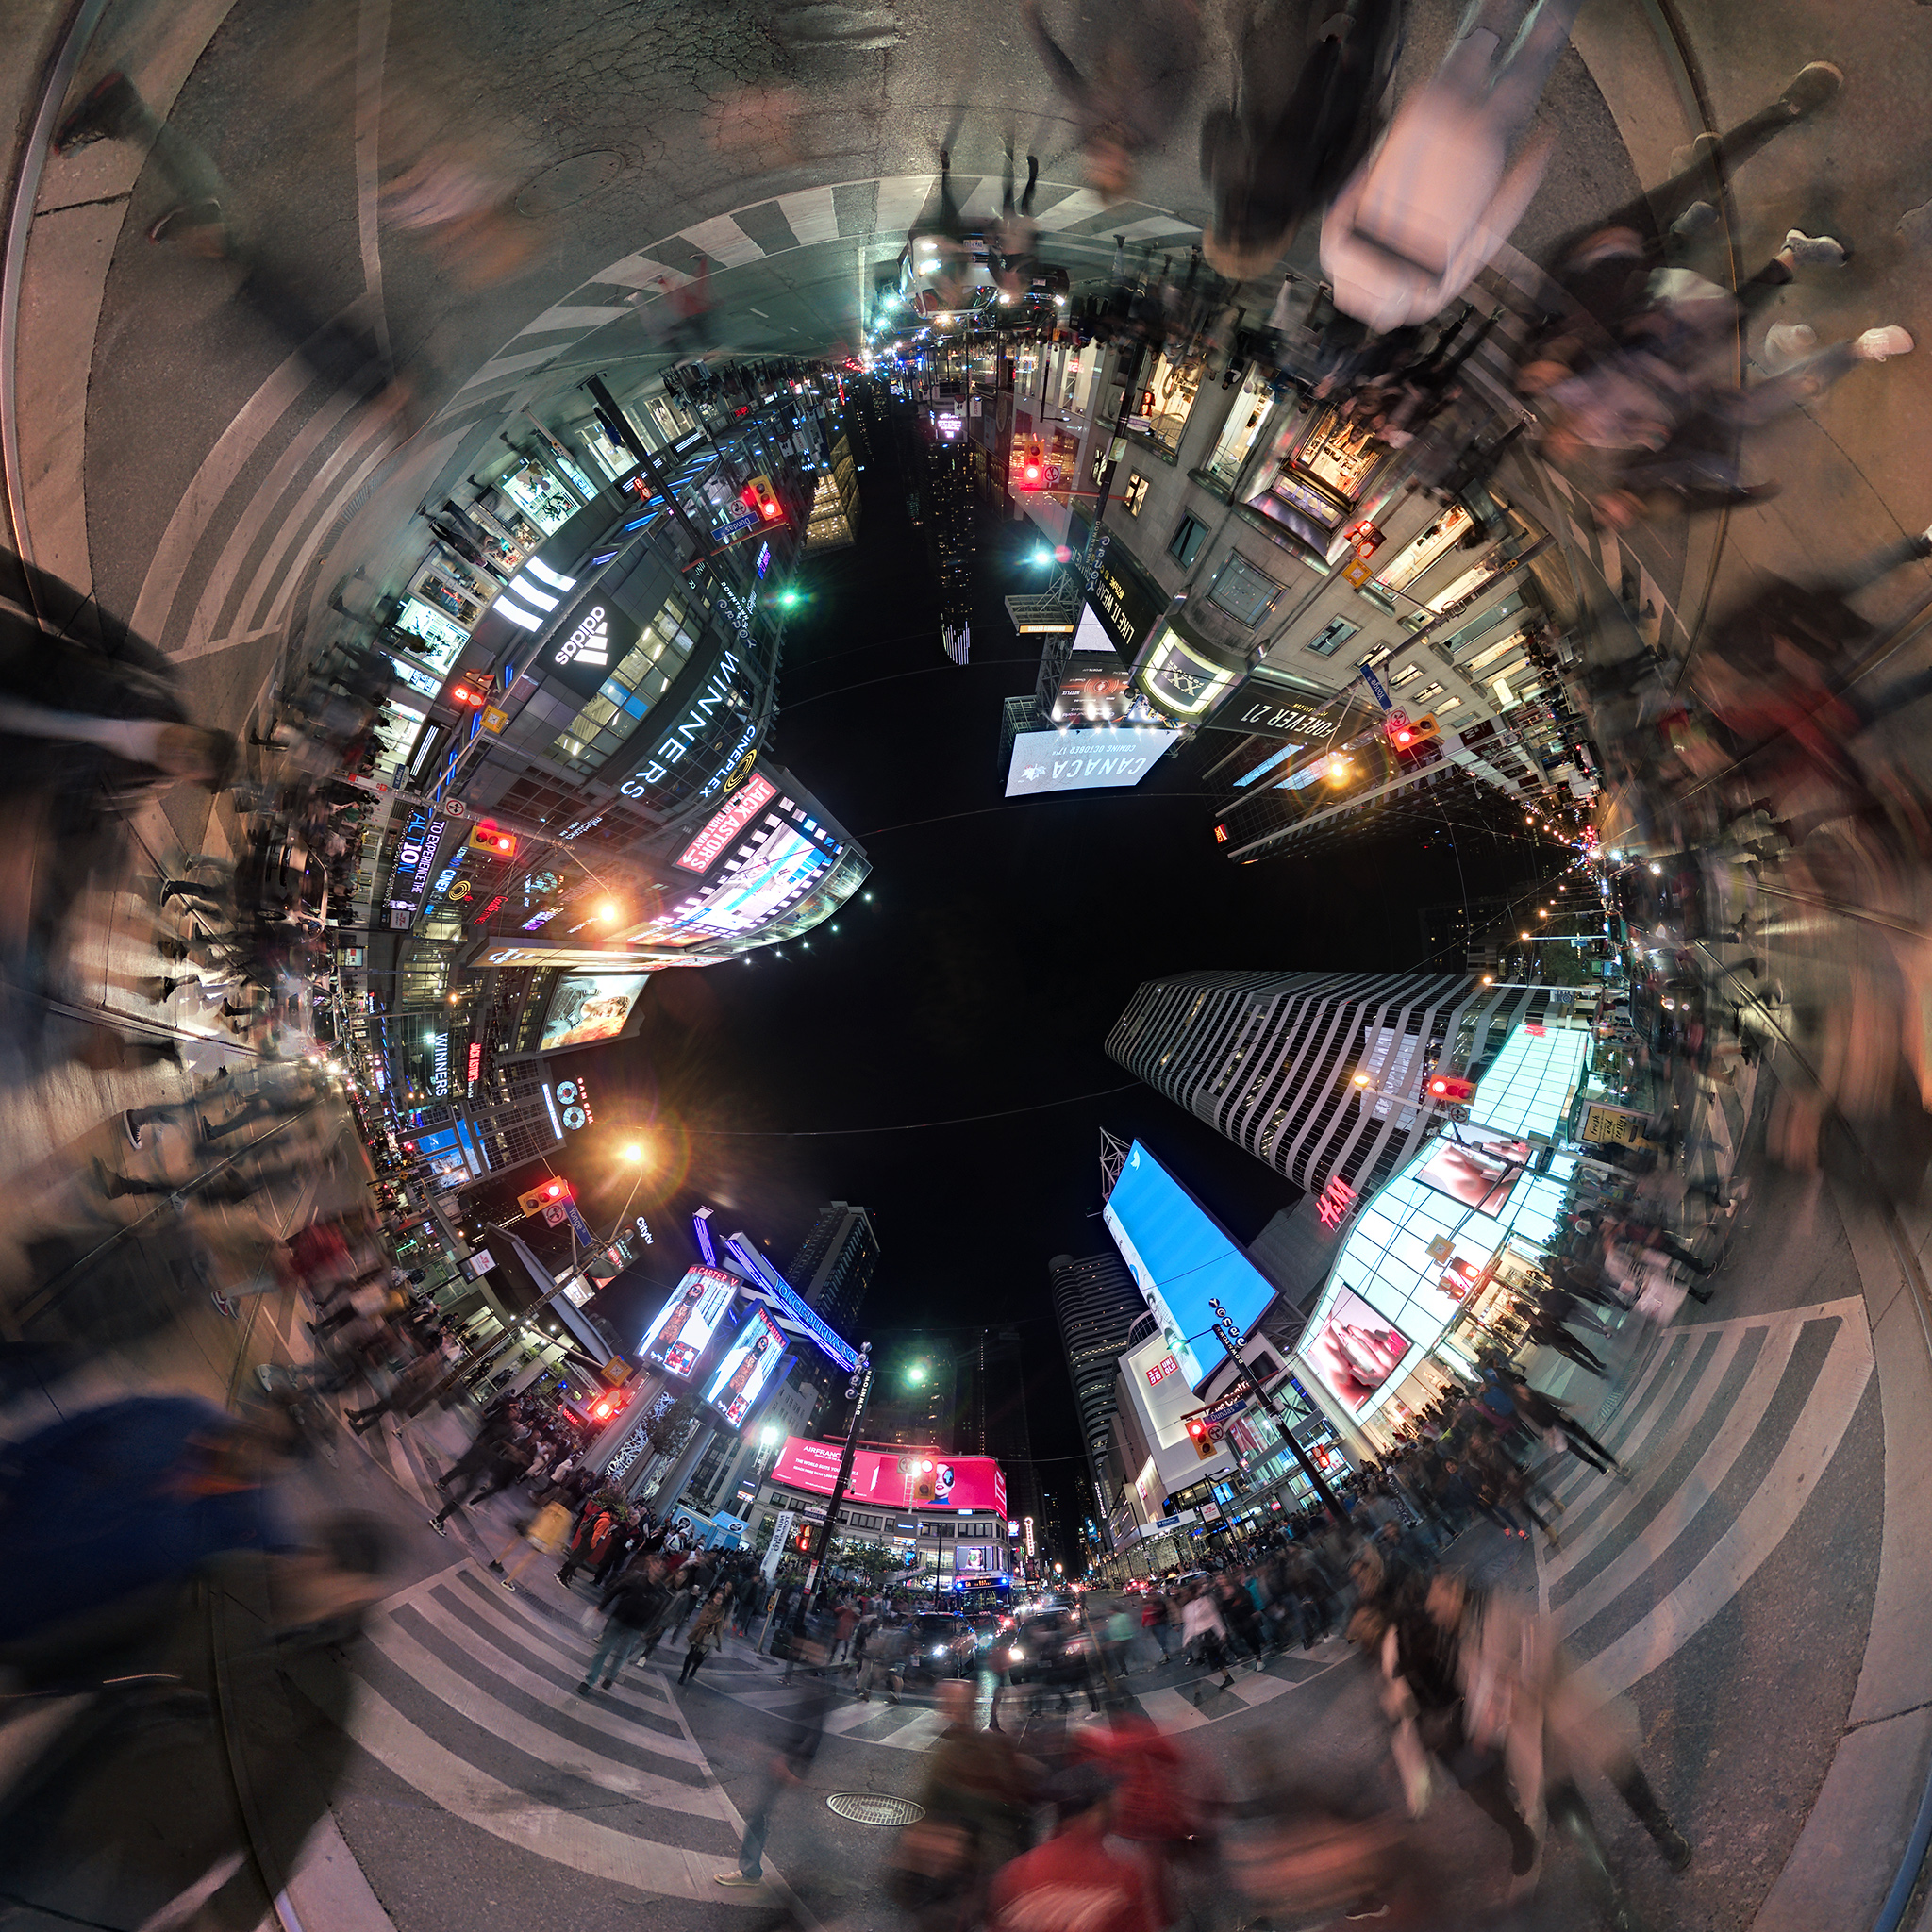 yonge-dundas_nuit_blanche_intersection_panono_02b.jpg